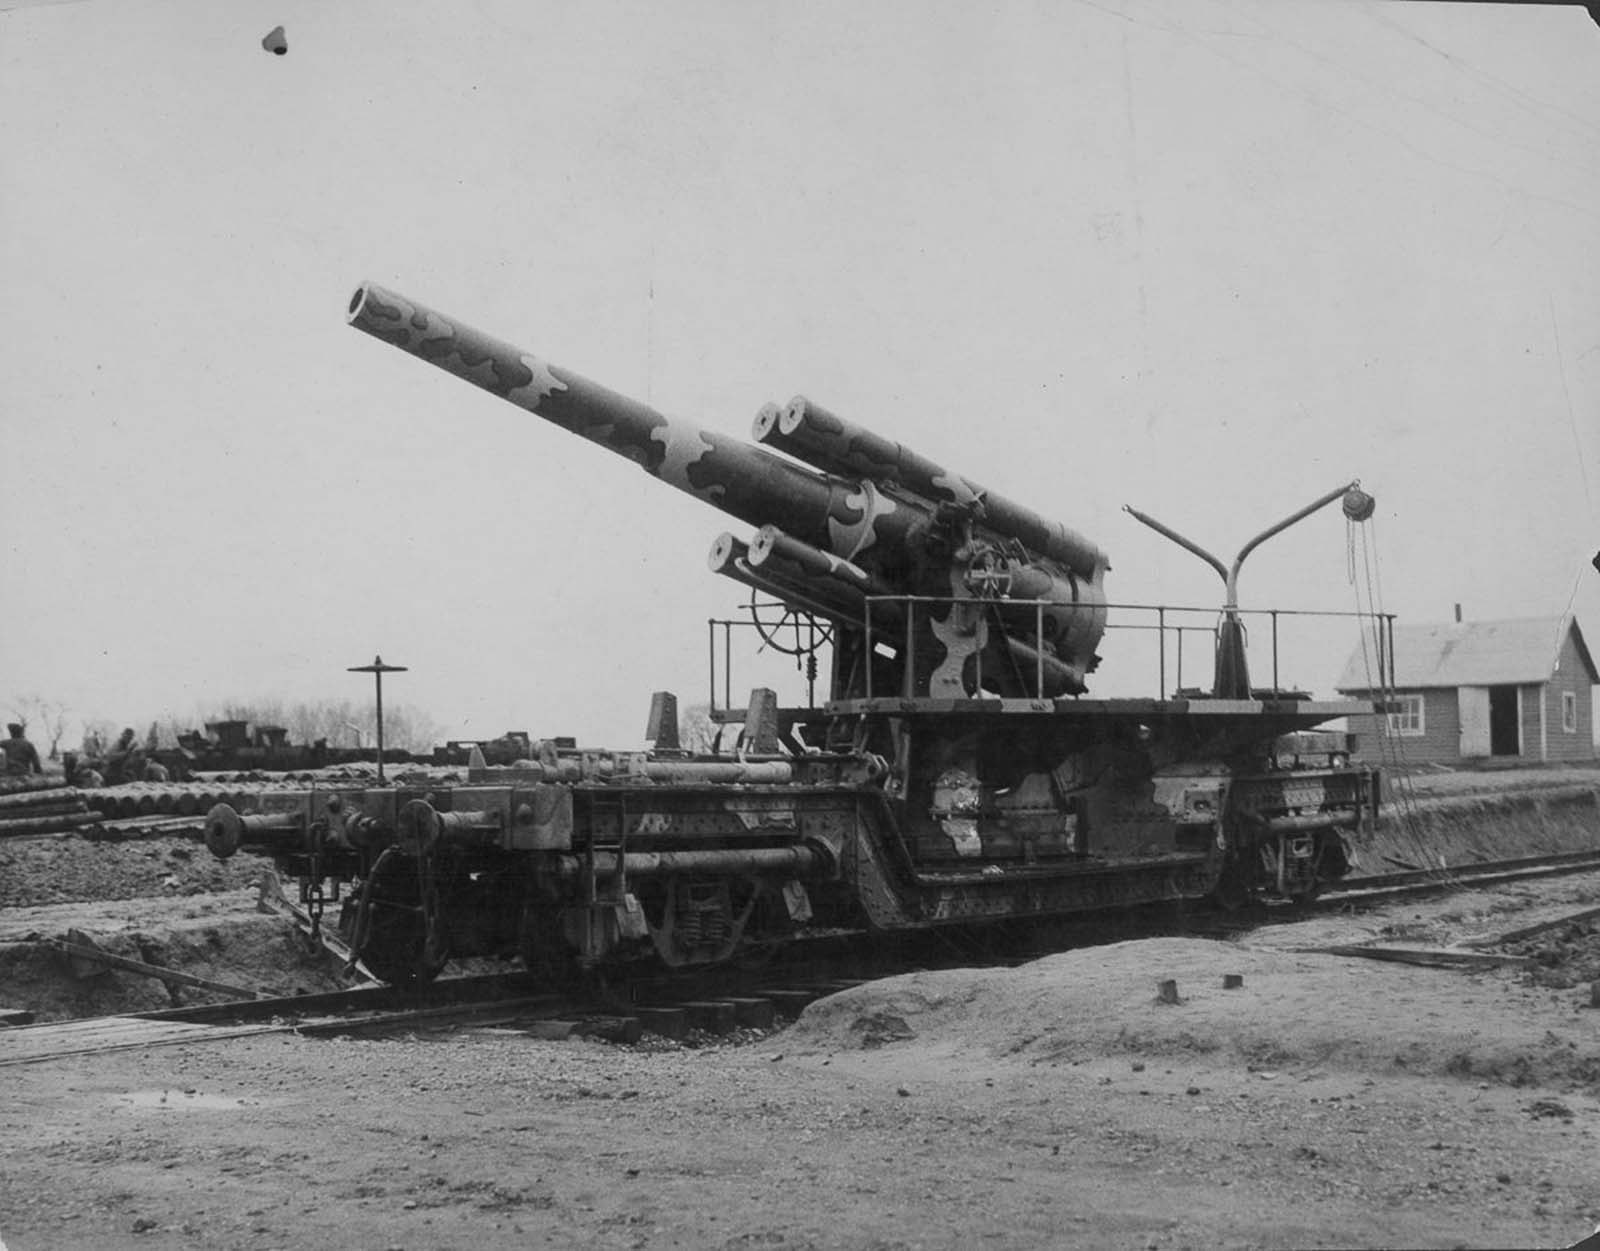 An eight-inch Mk. VI railway gun in use during World War I at Aberdeen Proving Grounds in England. 1916.